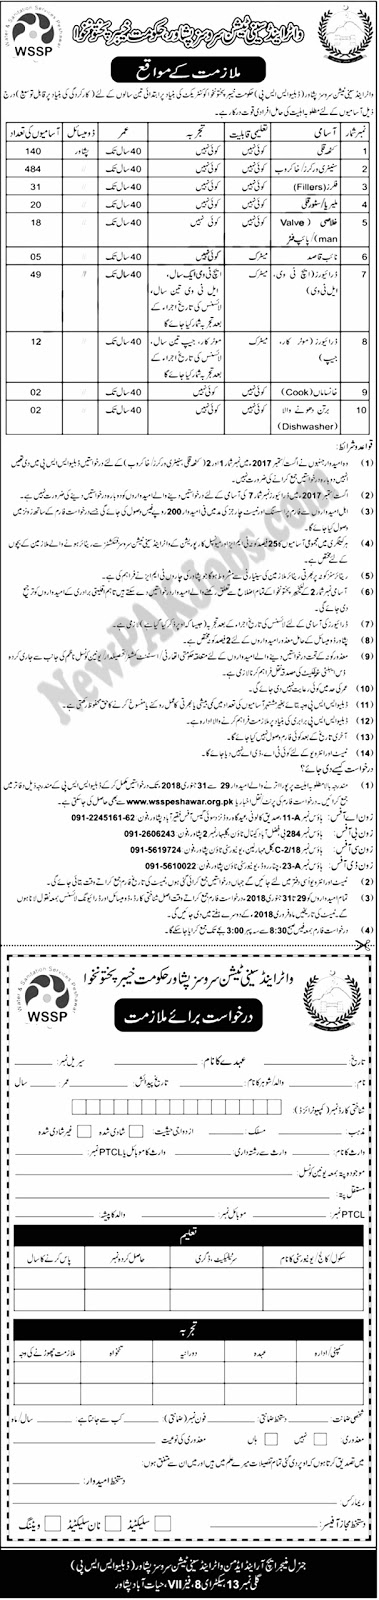 Latest KPK Jobs in Water and Sanitation Services Peshawar (763 Vacancies)